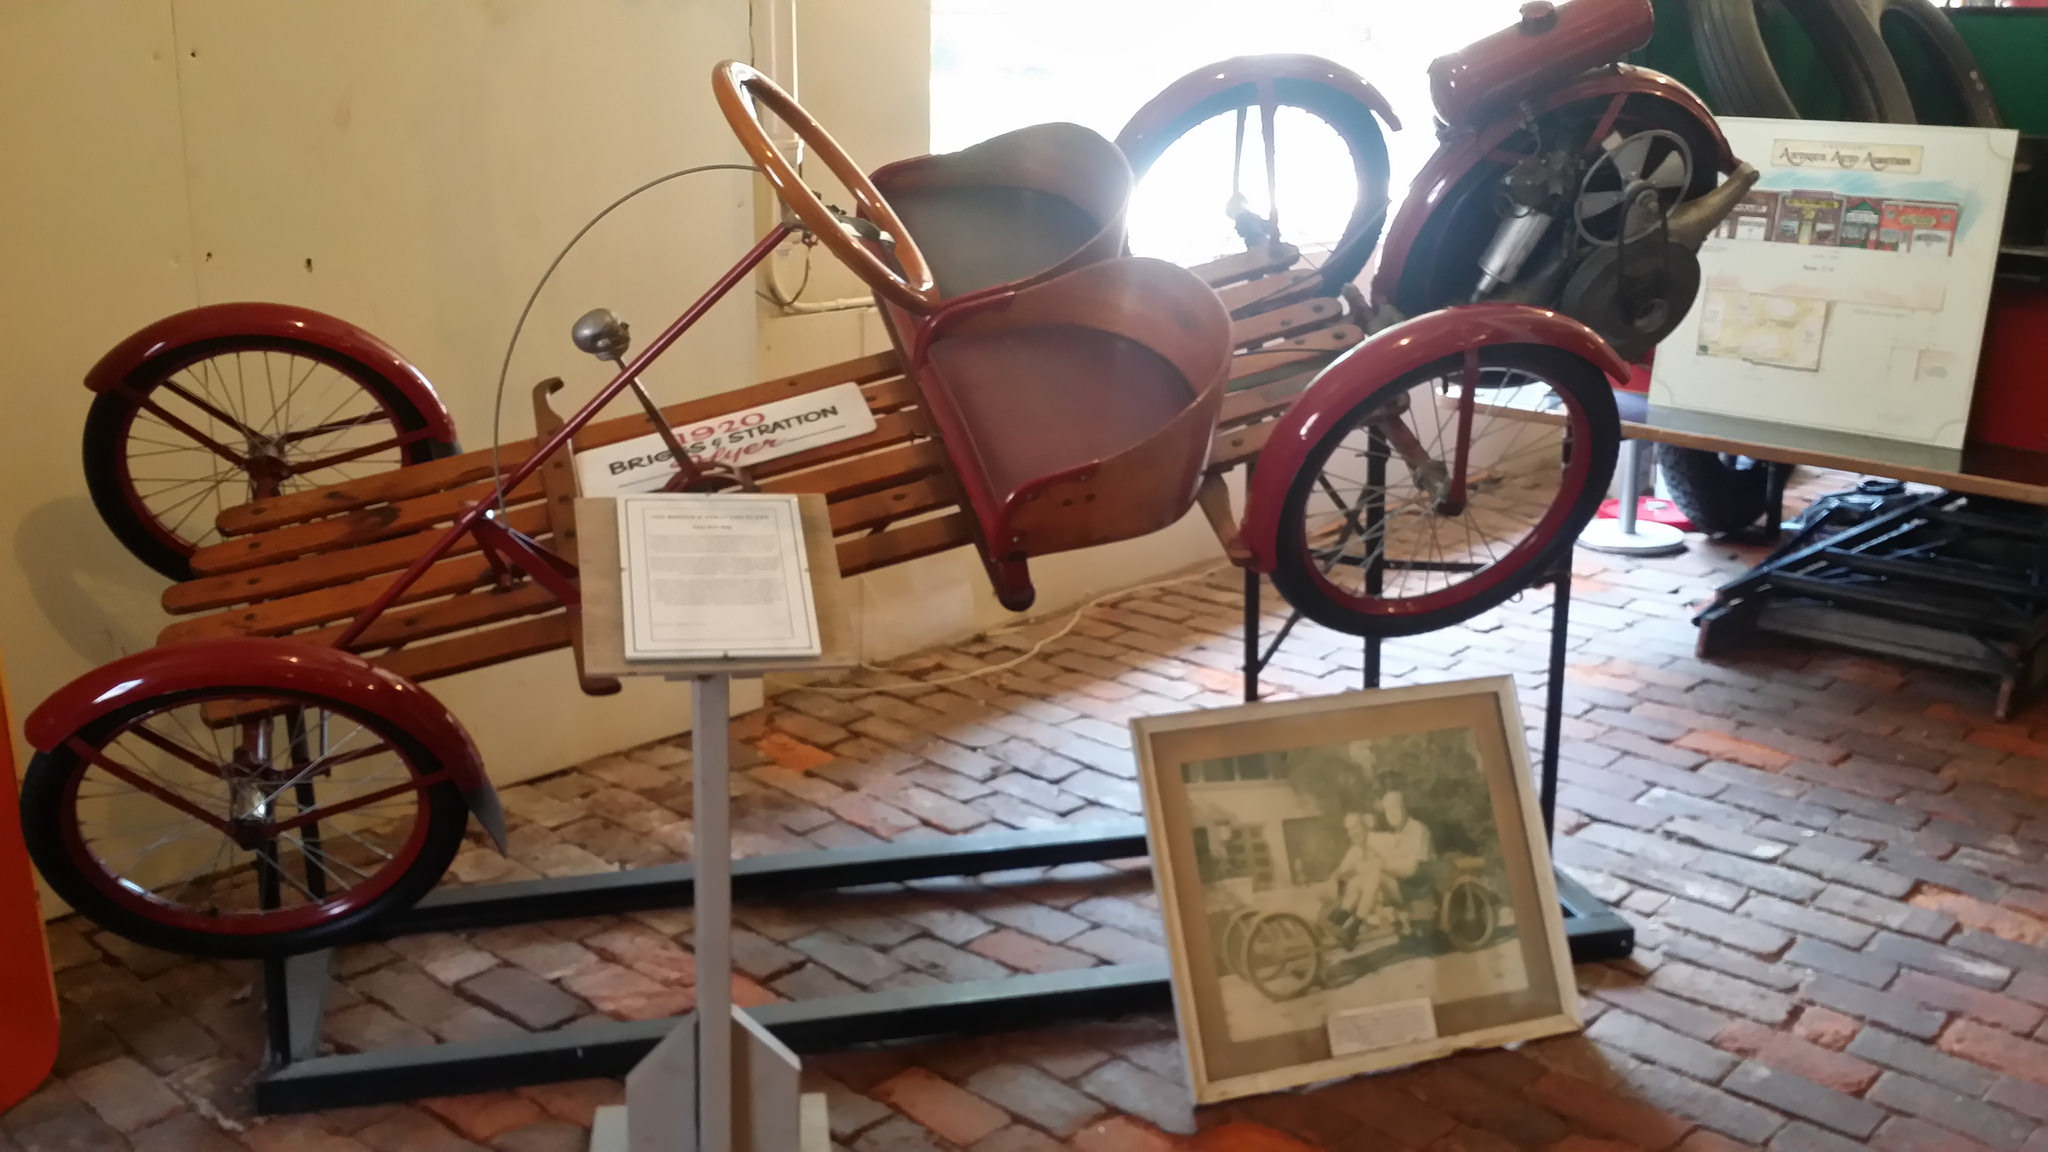 Briggs Amp Stratton Dabbled In More Than Lawn Mowers